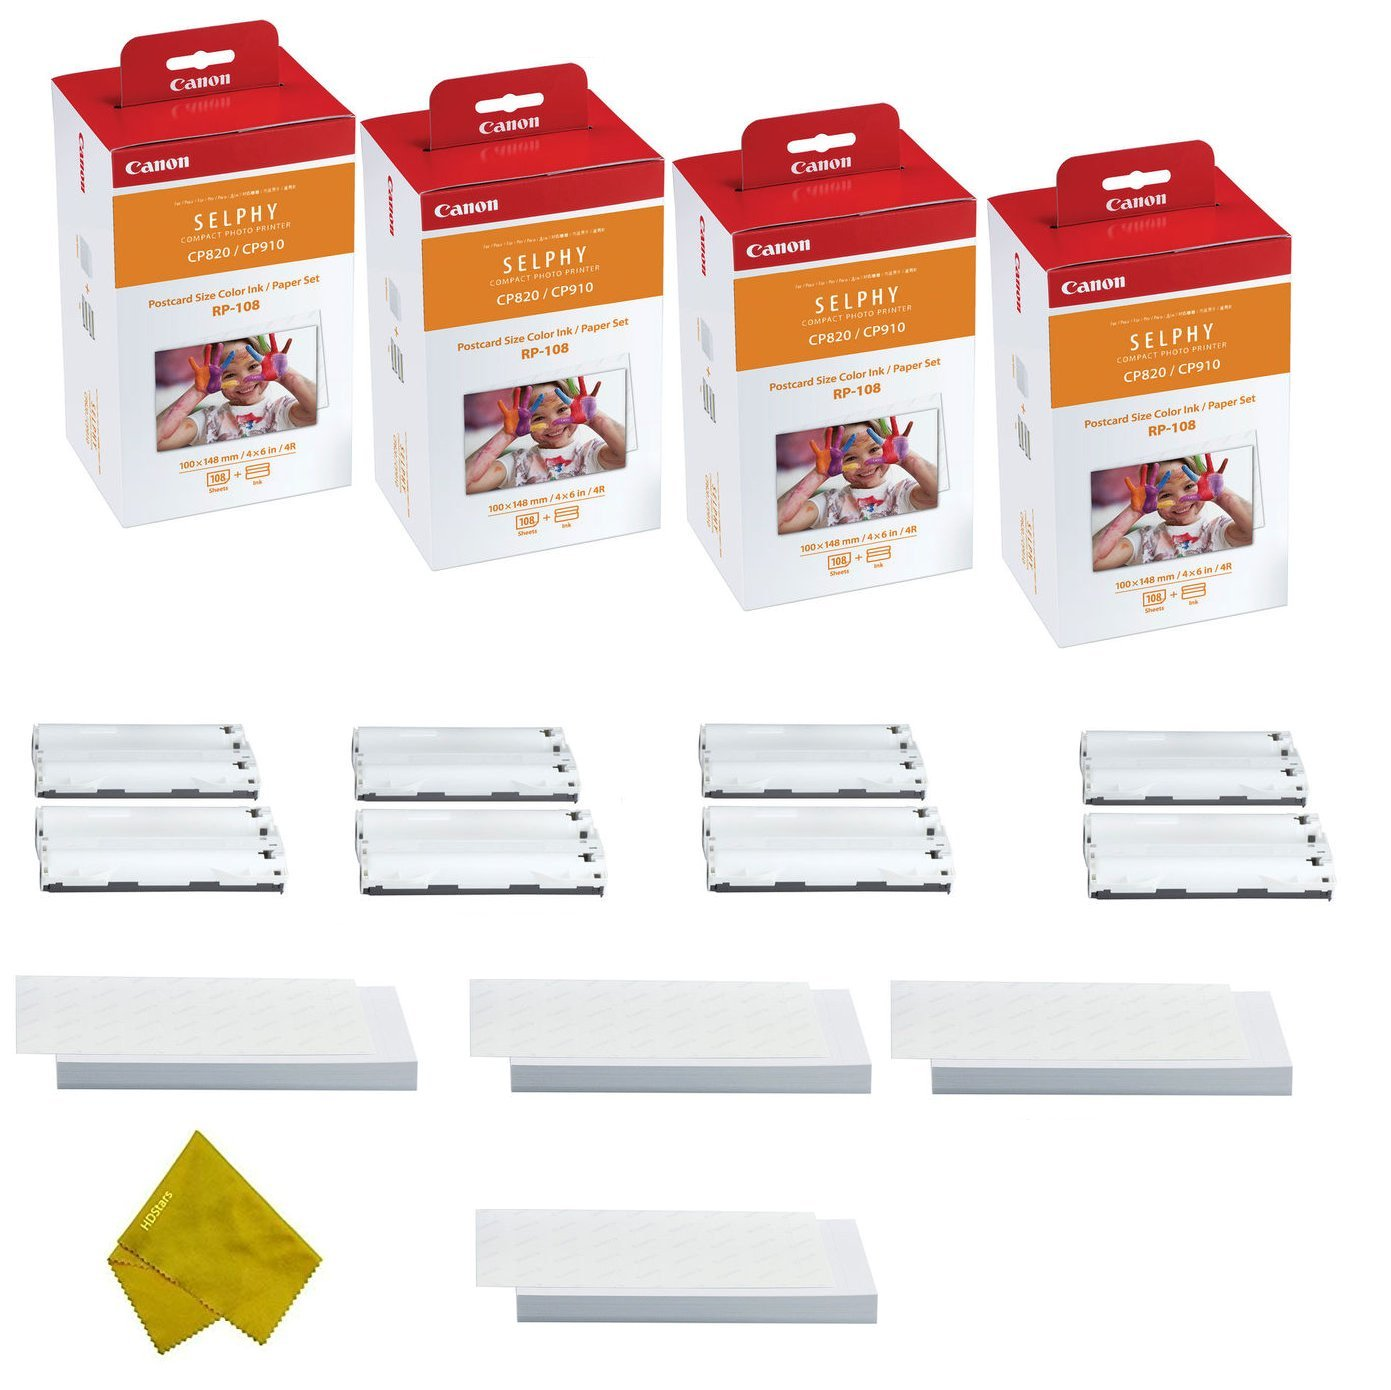 Canon RP-108 4 High Capacity Color Ink Cassette and 432 Sheets 4 x 6 Paper Glossy For SELPHY CP1300, CP1200, CP910, CP820 Wireless Compact Photo Printer (4-Pack)